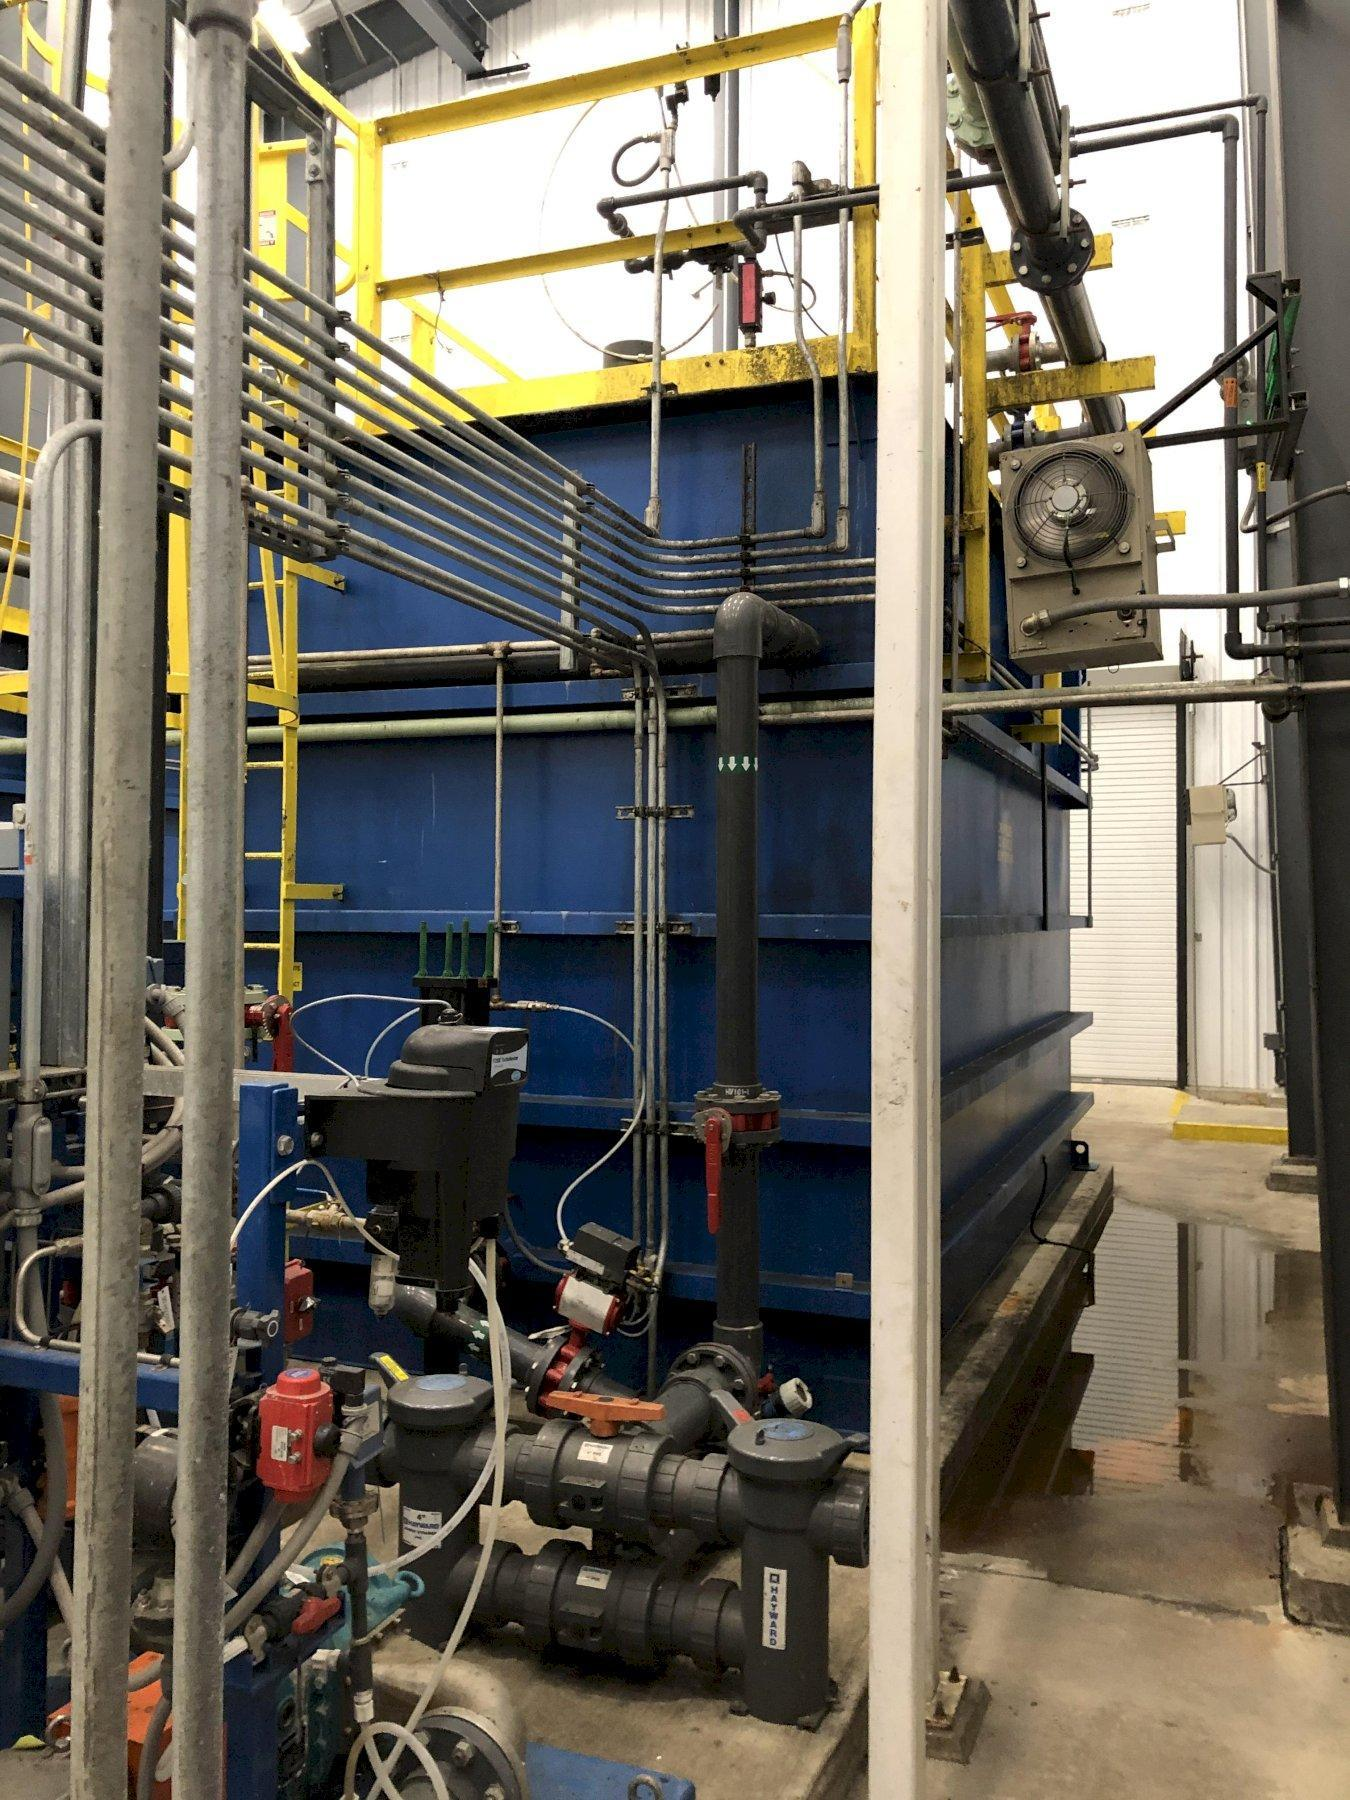 2016 GE water systems ultra FILTER system to include Lochinvar model 100148512 hot water heater, citric acid system with pumps and flow valves, sodium hypochlorite 12.5% system with pumps and flow valves, 2- 3 hp process pumps systems with remote controls and common plastic tank, 2- aerzen positive displacement delta blowers, 2- 8' x 17' x 11' tall lined tanks, 3- 1.5 hp recirculating pumps, 2- 2 way pendent controlled long lift electric hoists, all related piping and valves, mcc's, system controls with Allen Bradley compactlogixl43 plc, Allen Bradley flexu I/O